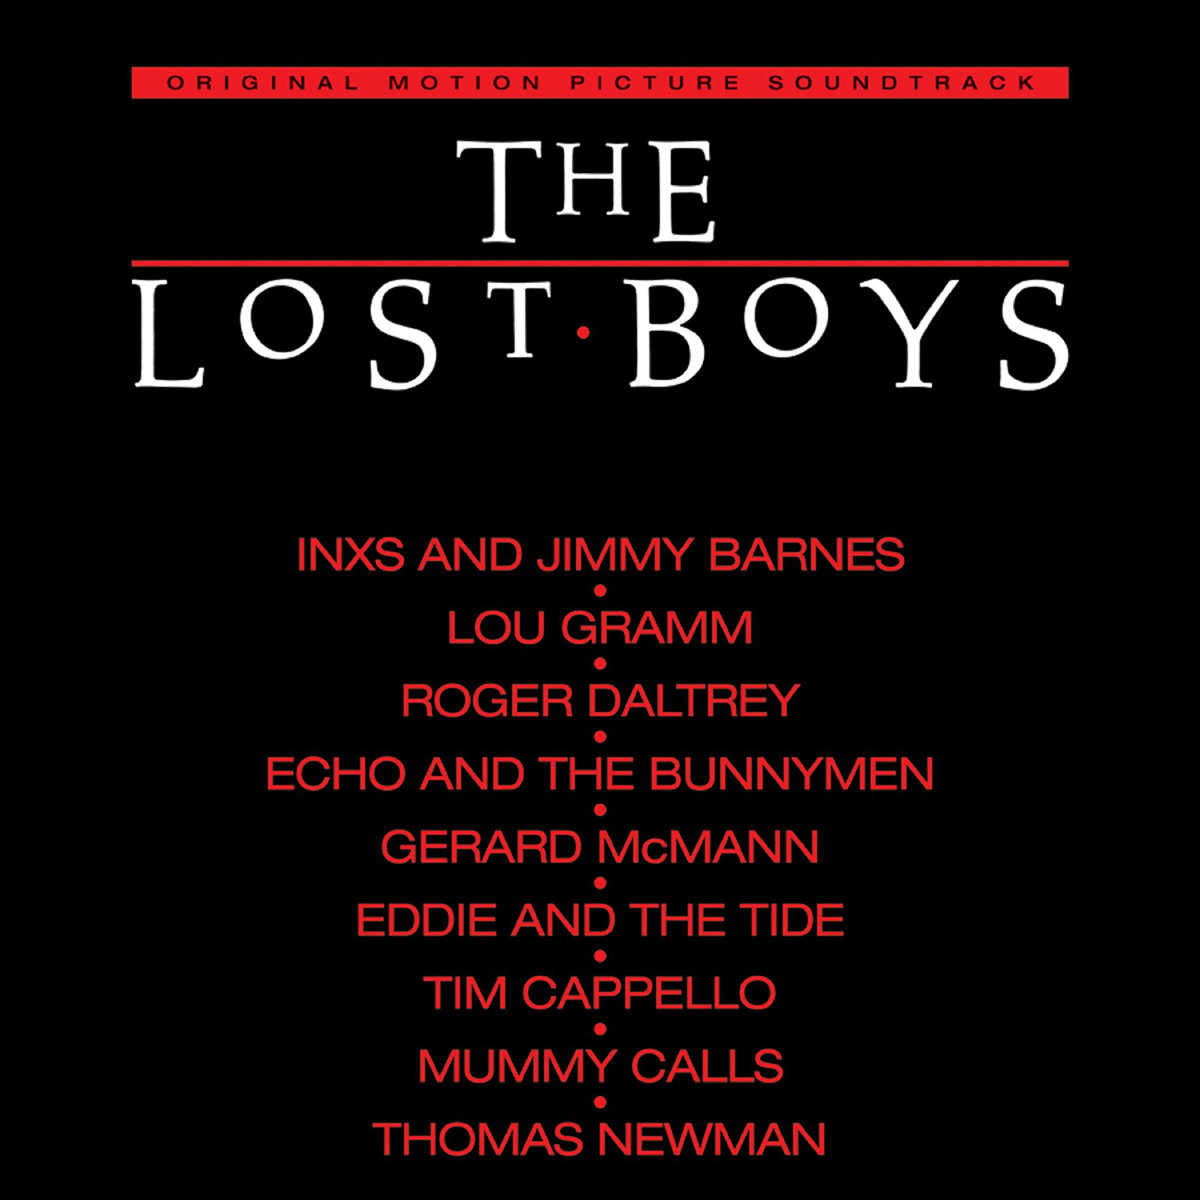 THE LOST BOYS - THE LOST BOYS-ORIGINAL SOUNDTRACK RECORDING 180 GRAM RED AUDIOPHILE LP